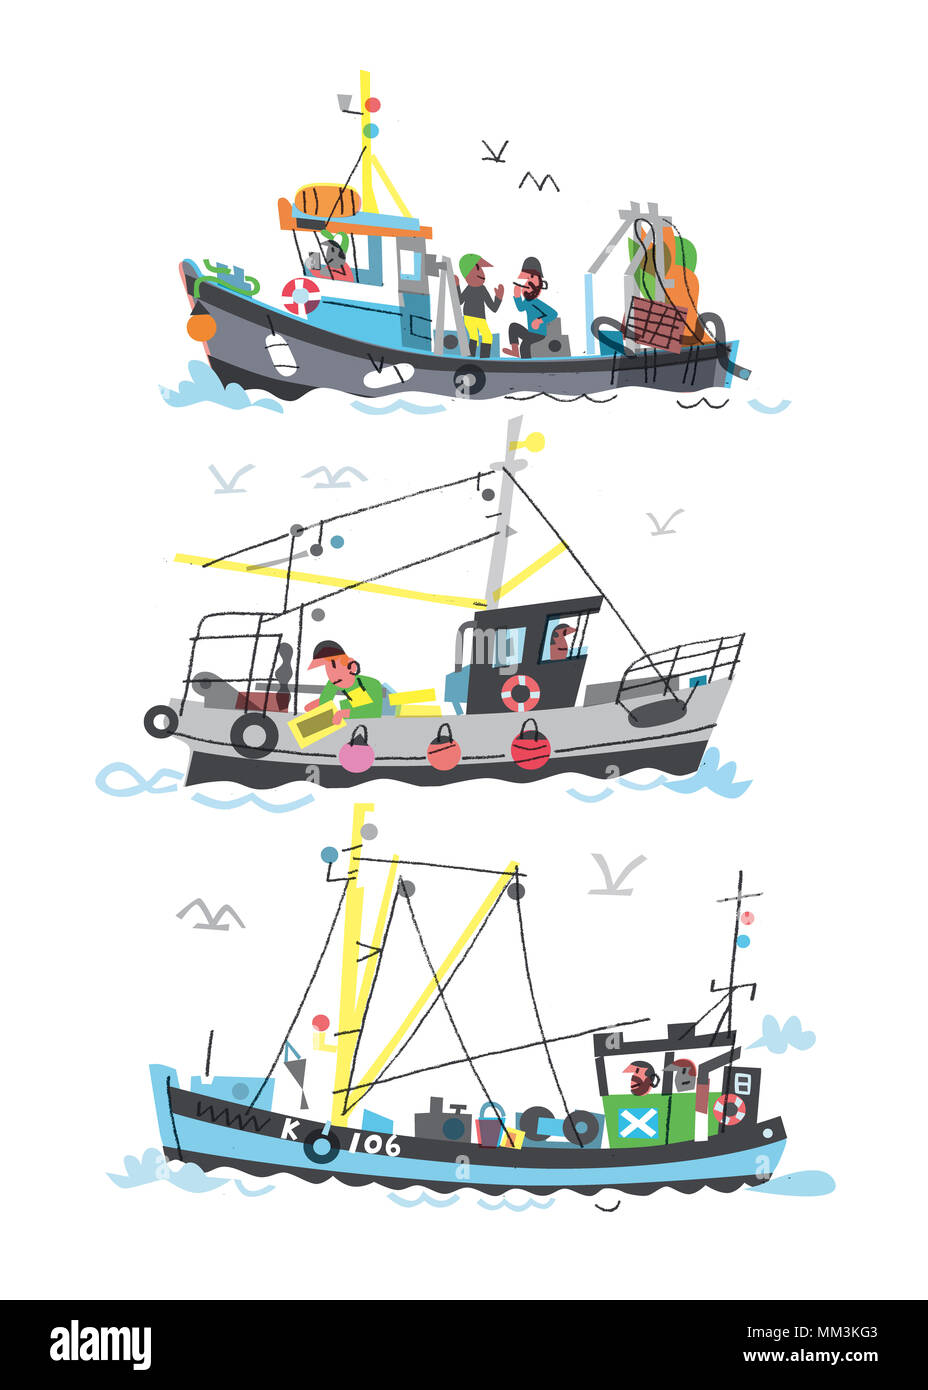 different boats stock photo 184478003 alamy